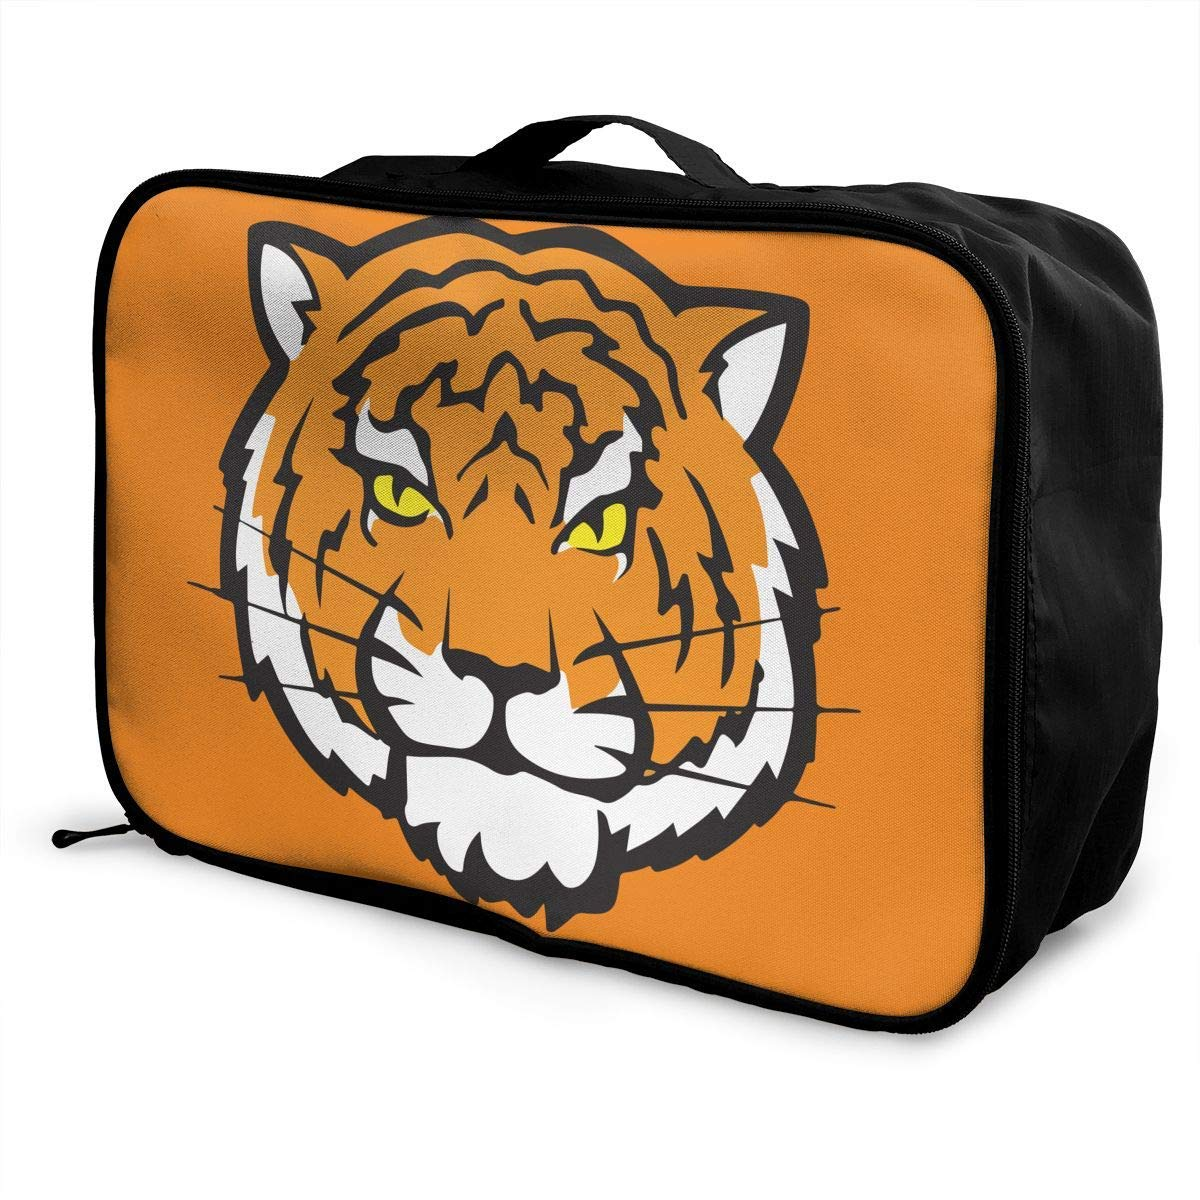 Portable Luggage Duffel Bag Tiger Travel Bags Carry-on In Trolley Handle